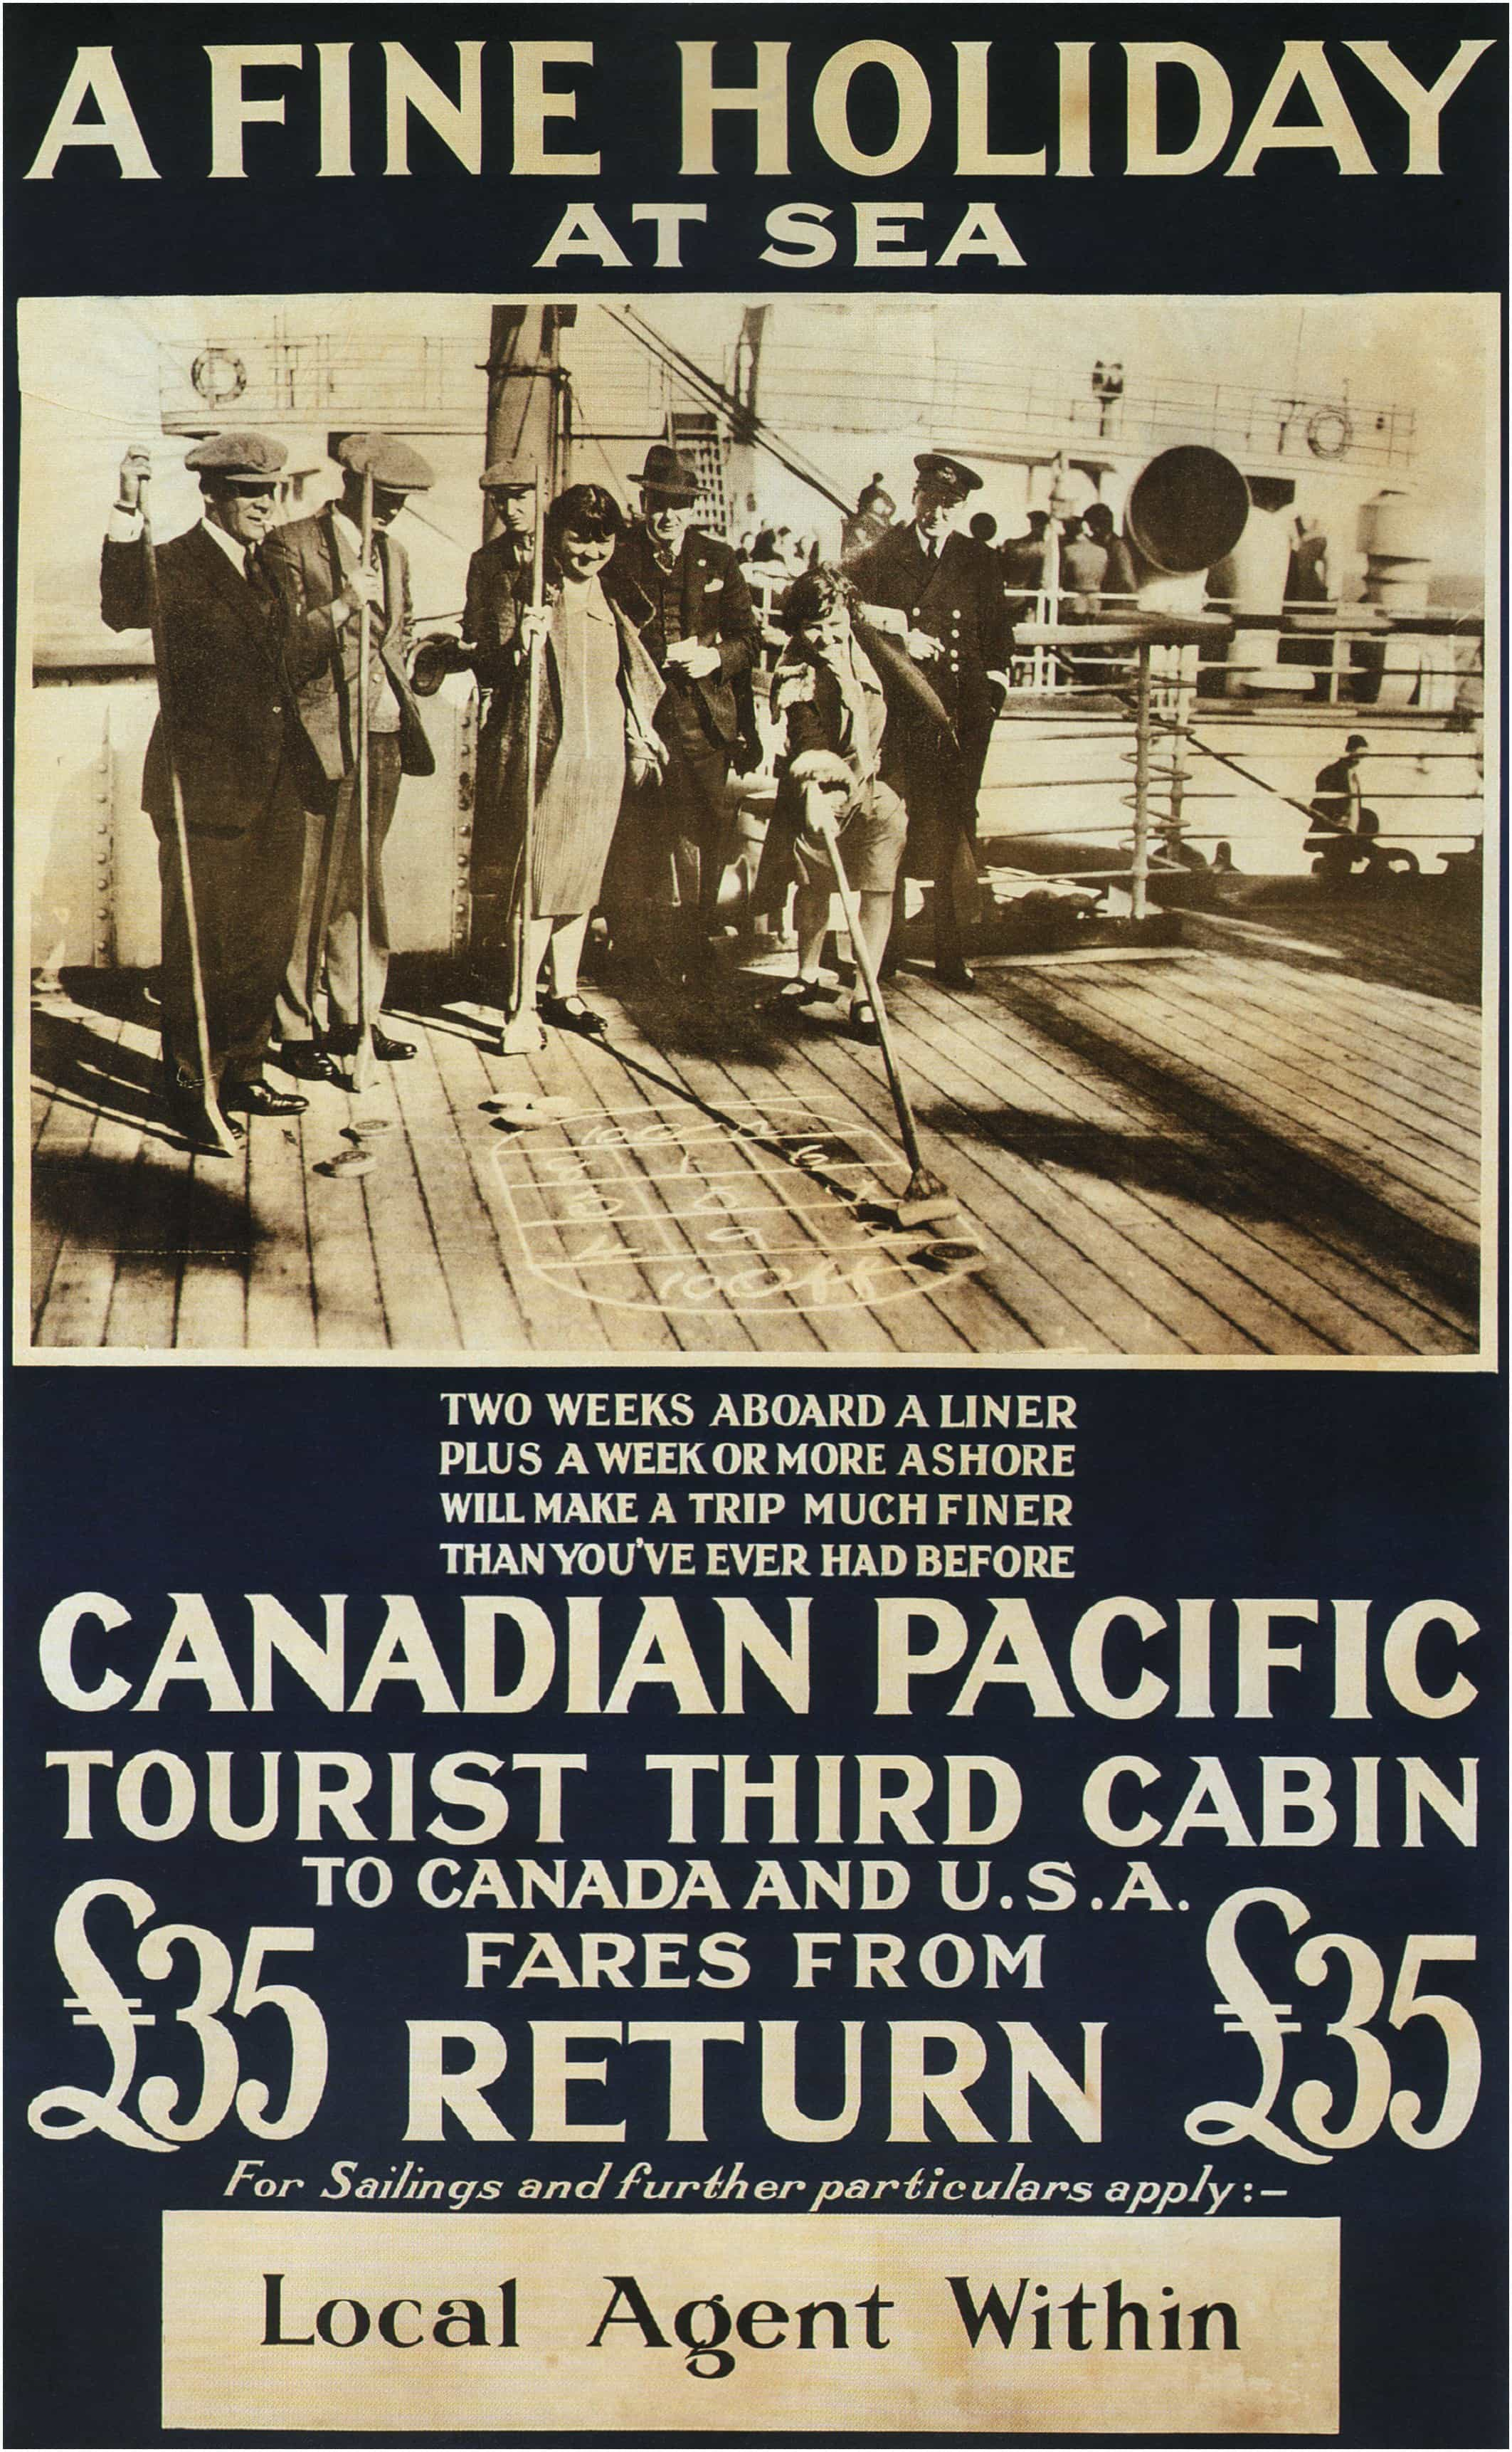 Canadina-Pacific-A-Fine-Holiday-at-Sea-Vintage-Travel-Poster